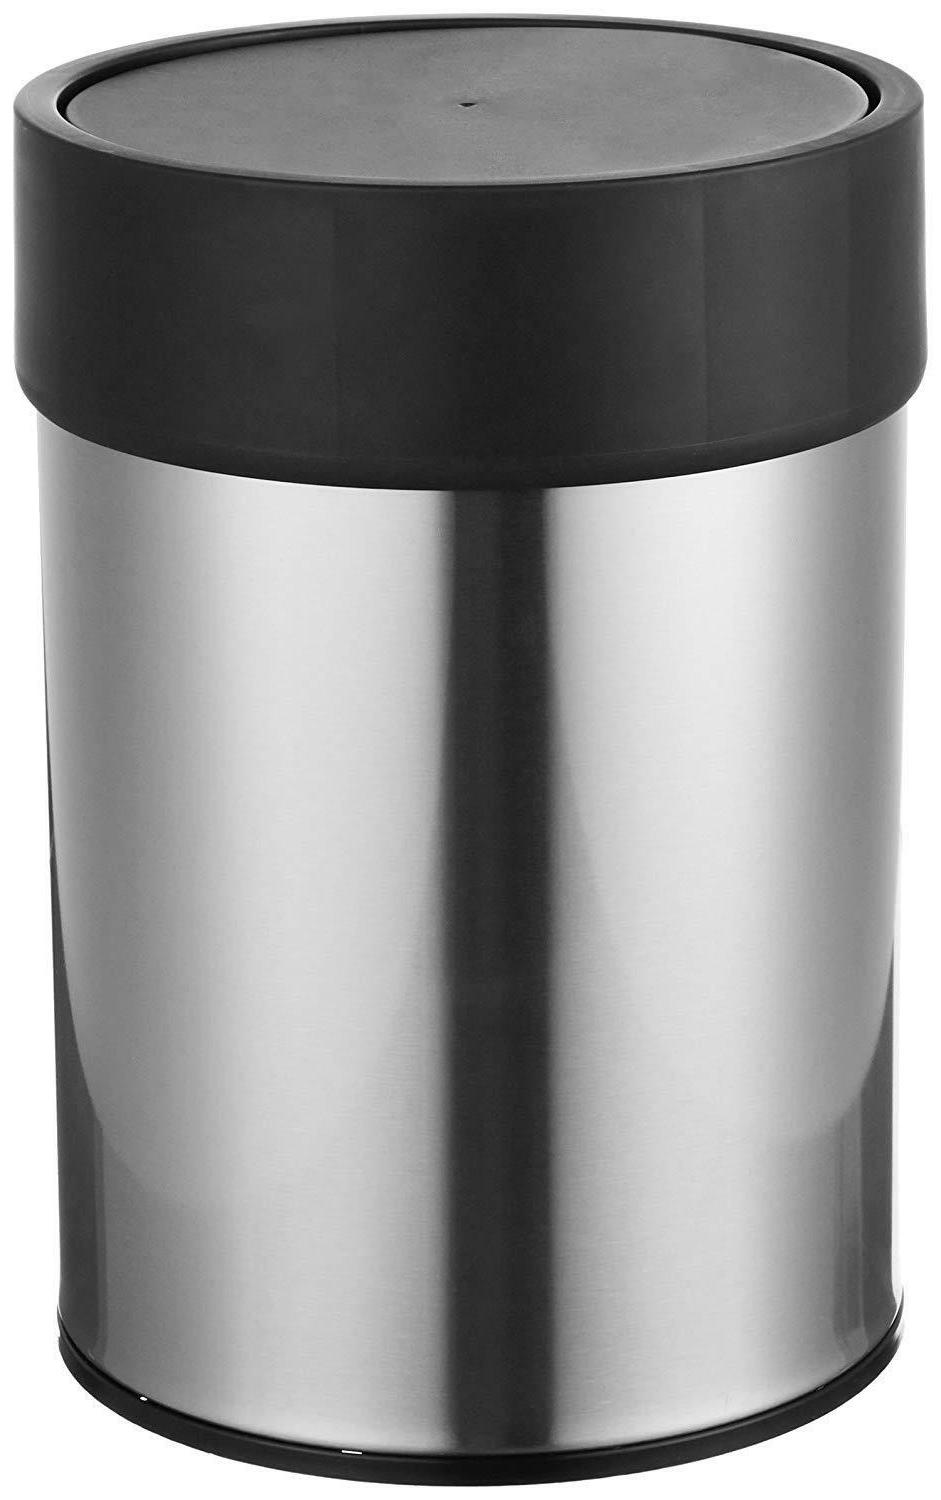 new stainless steel waste can white black